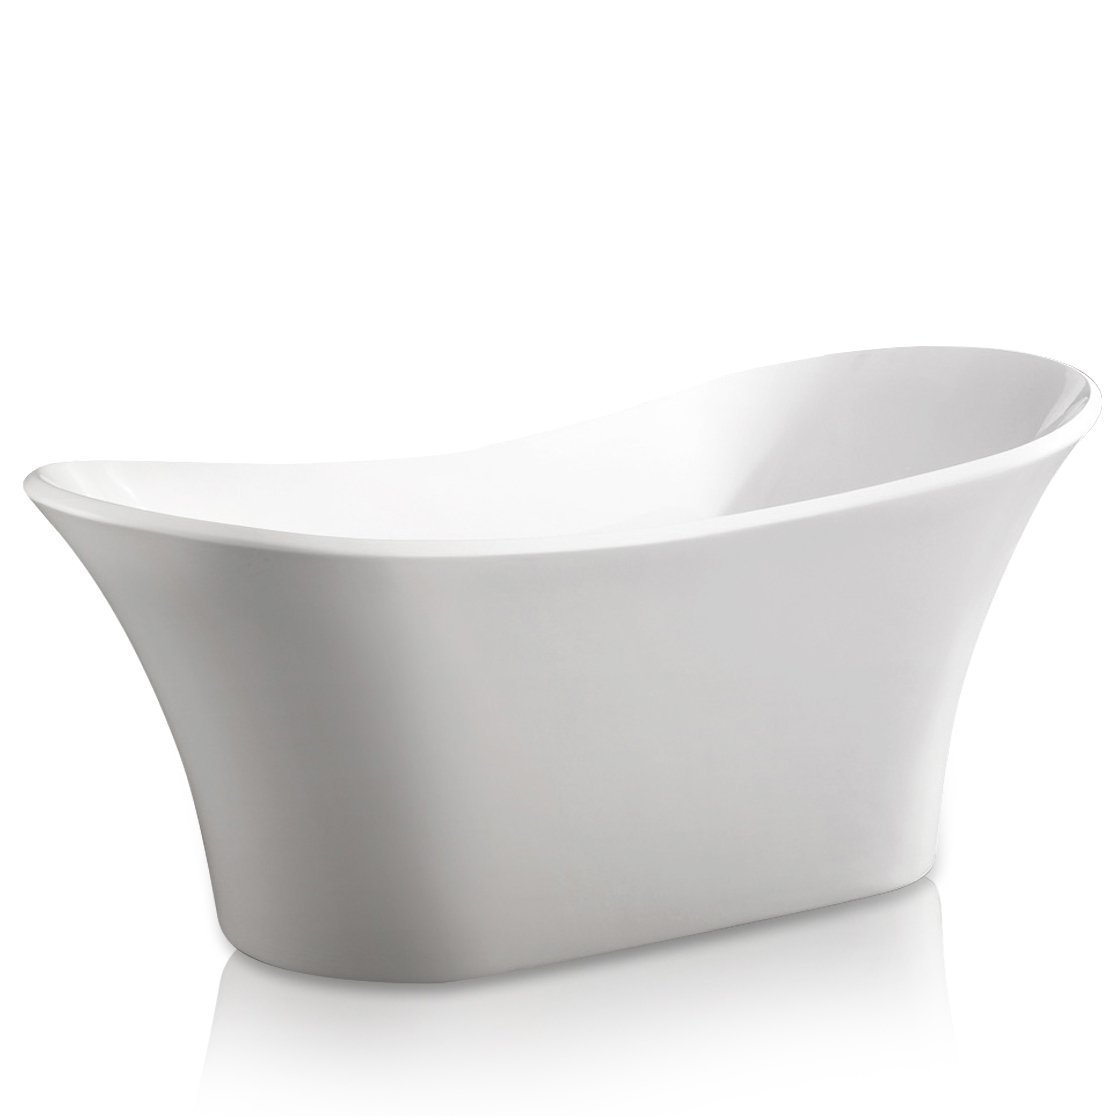 AKDY AZ-F274 Bathroom Freestand Acrylic Bathtub, White Color - Free ...